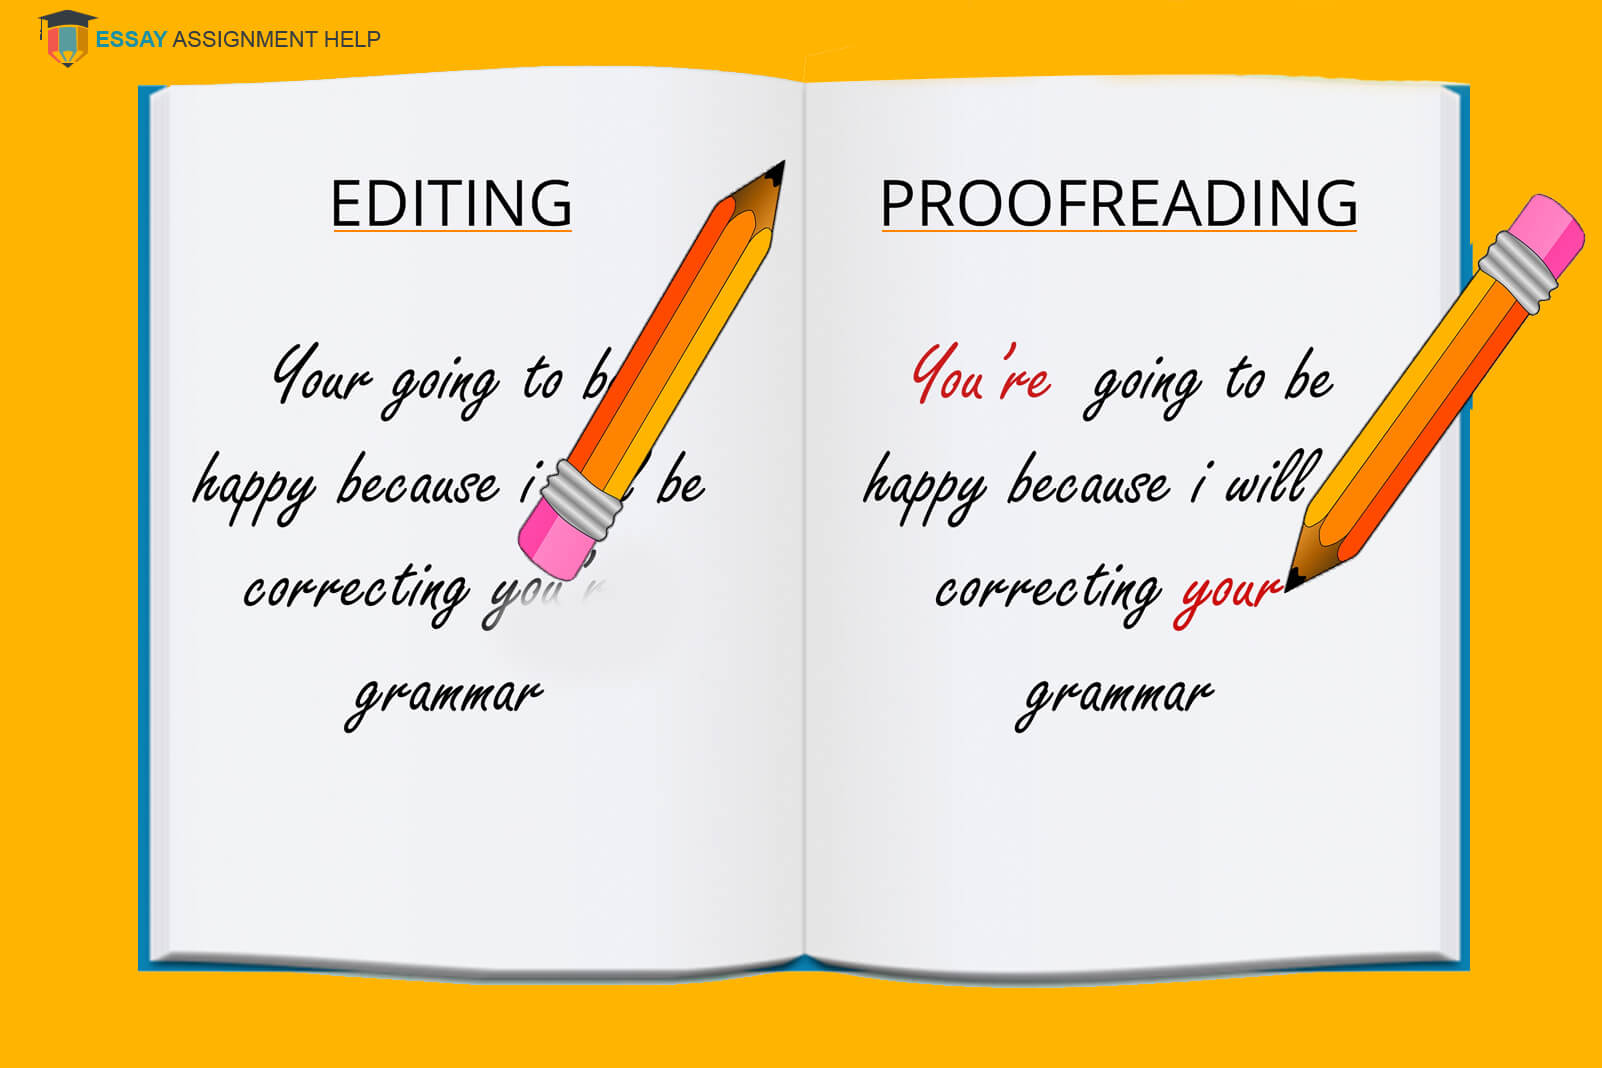 Online marketing proofreading service